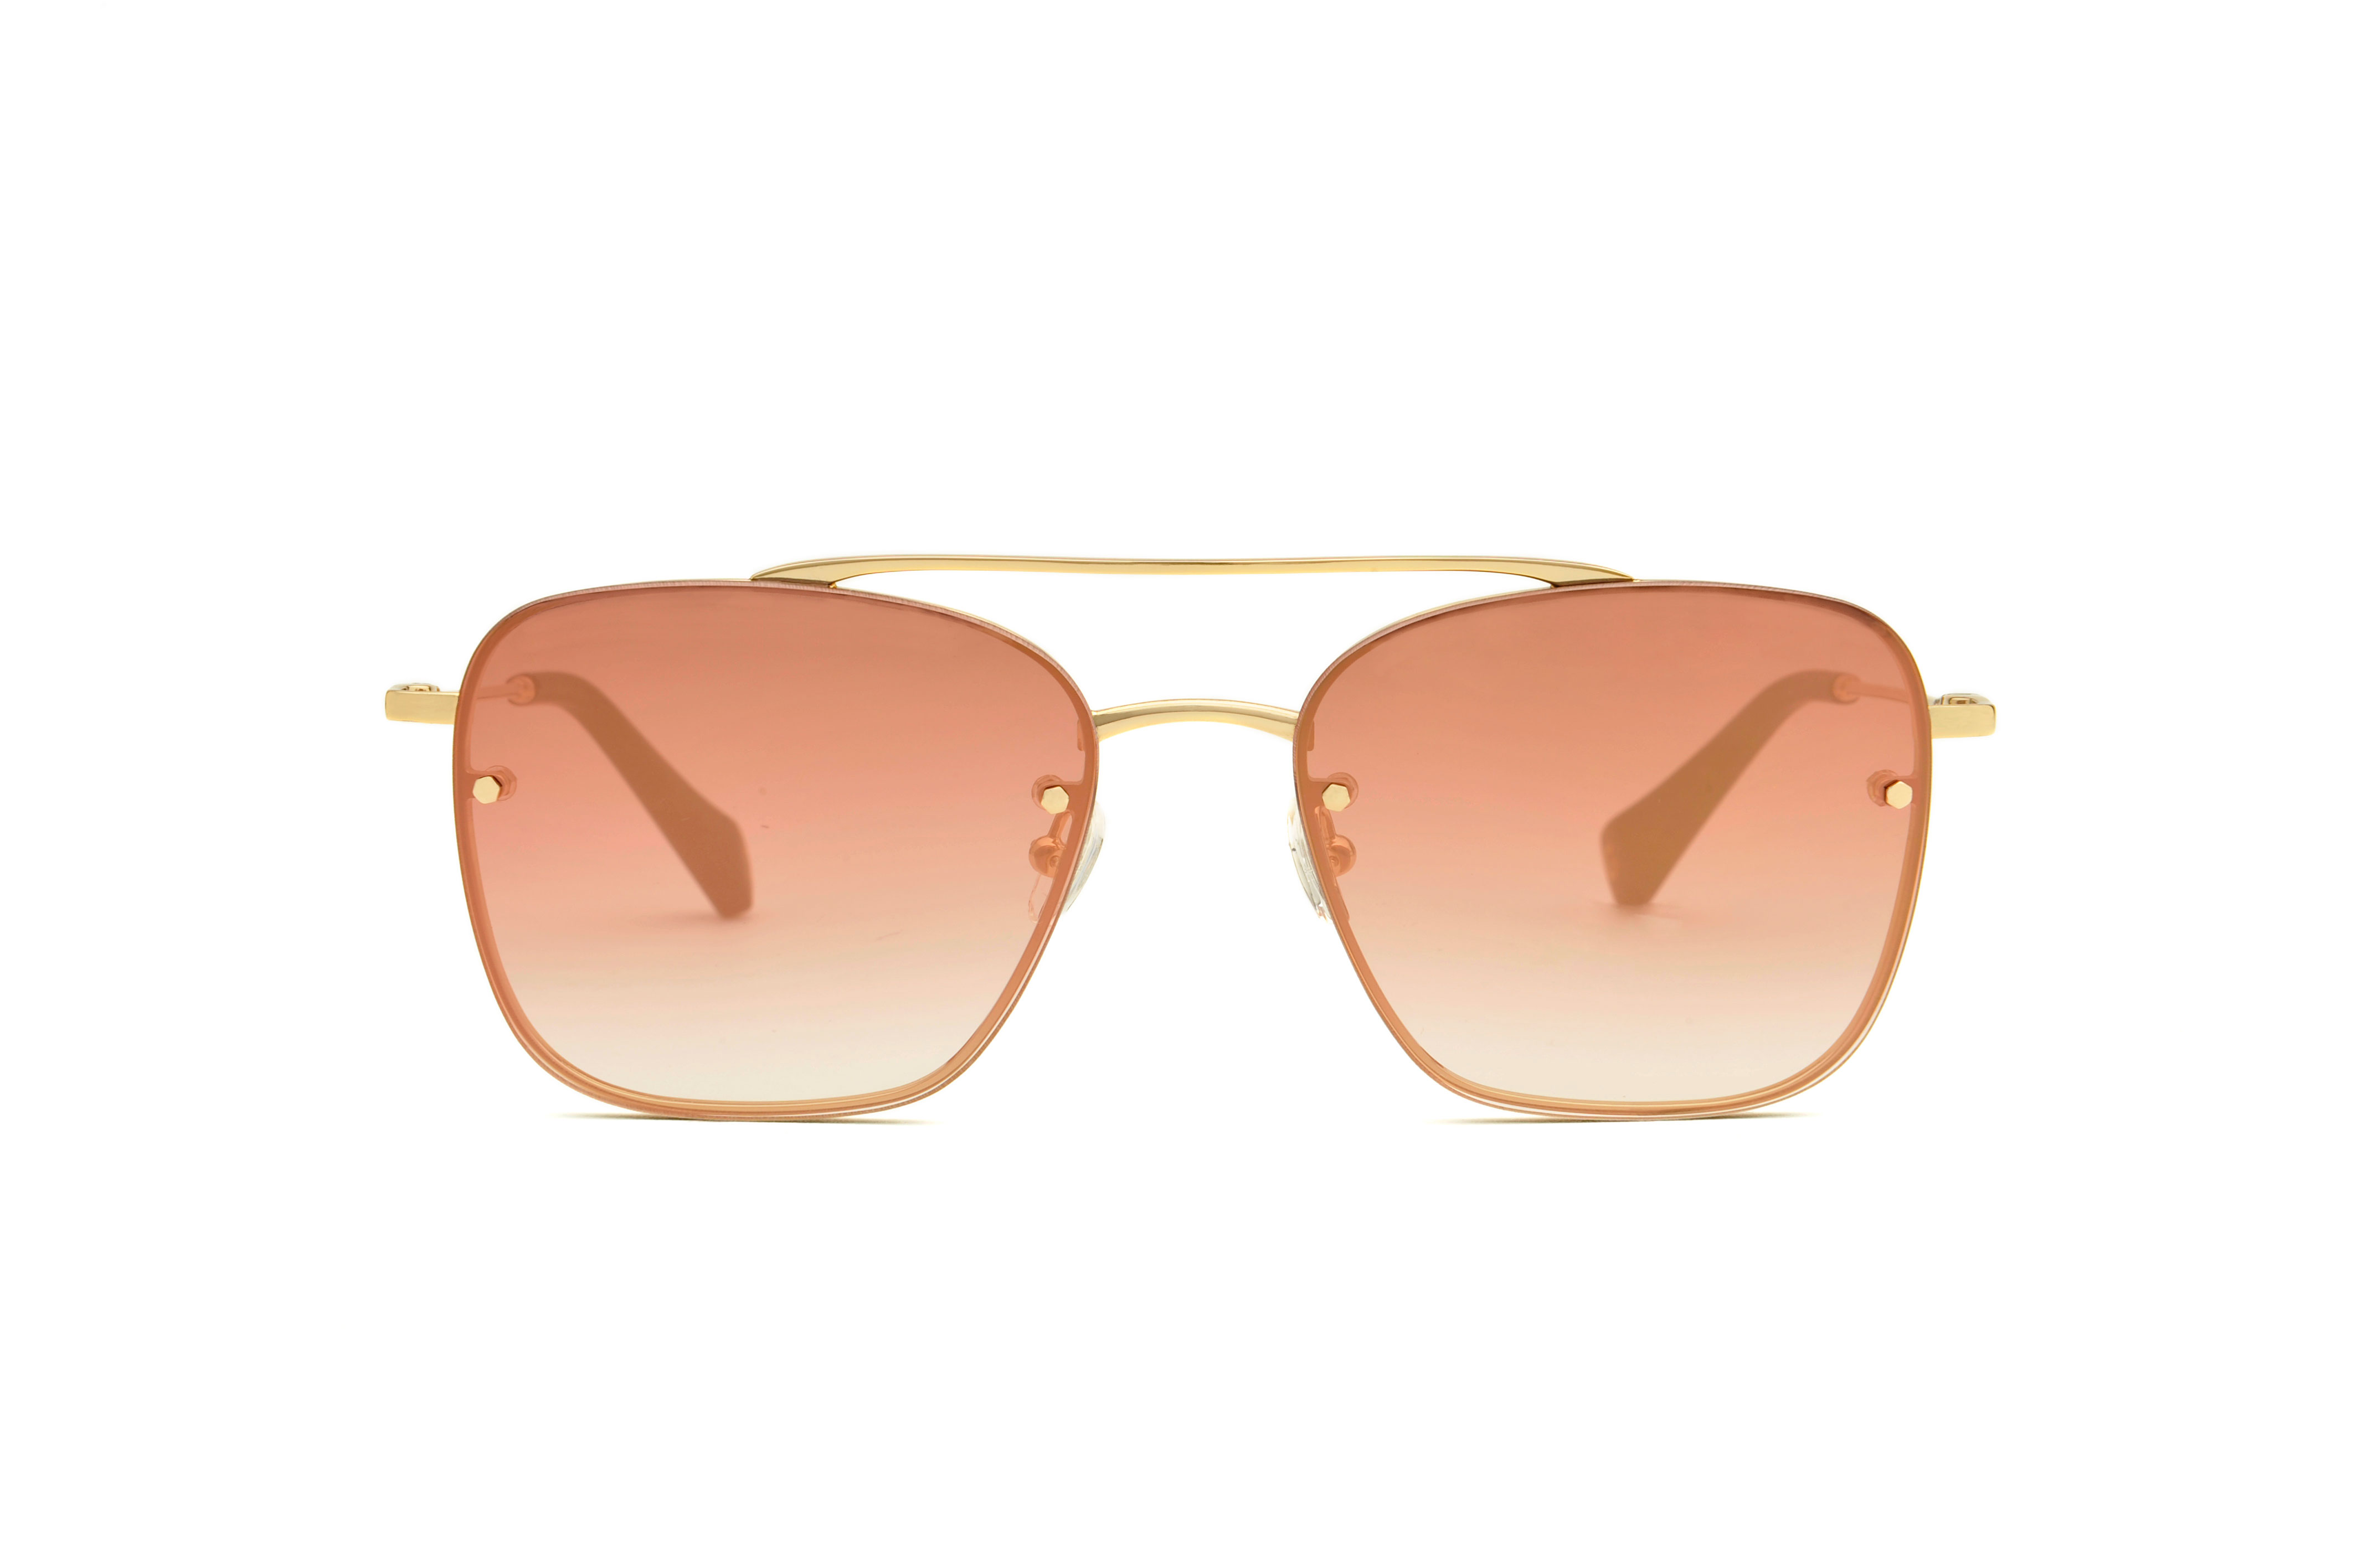 Apolo metal aviator gold sunglasses by GIGI Studios